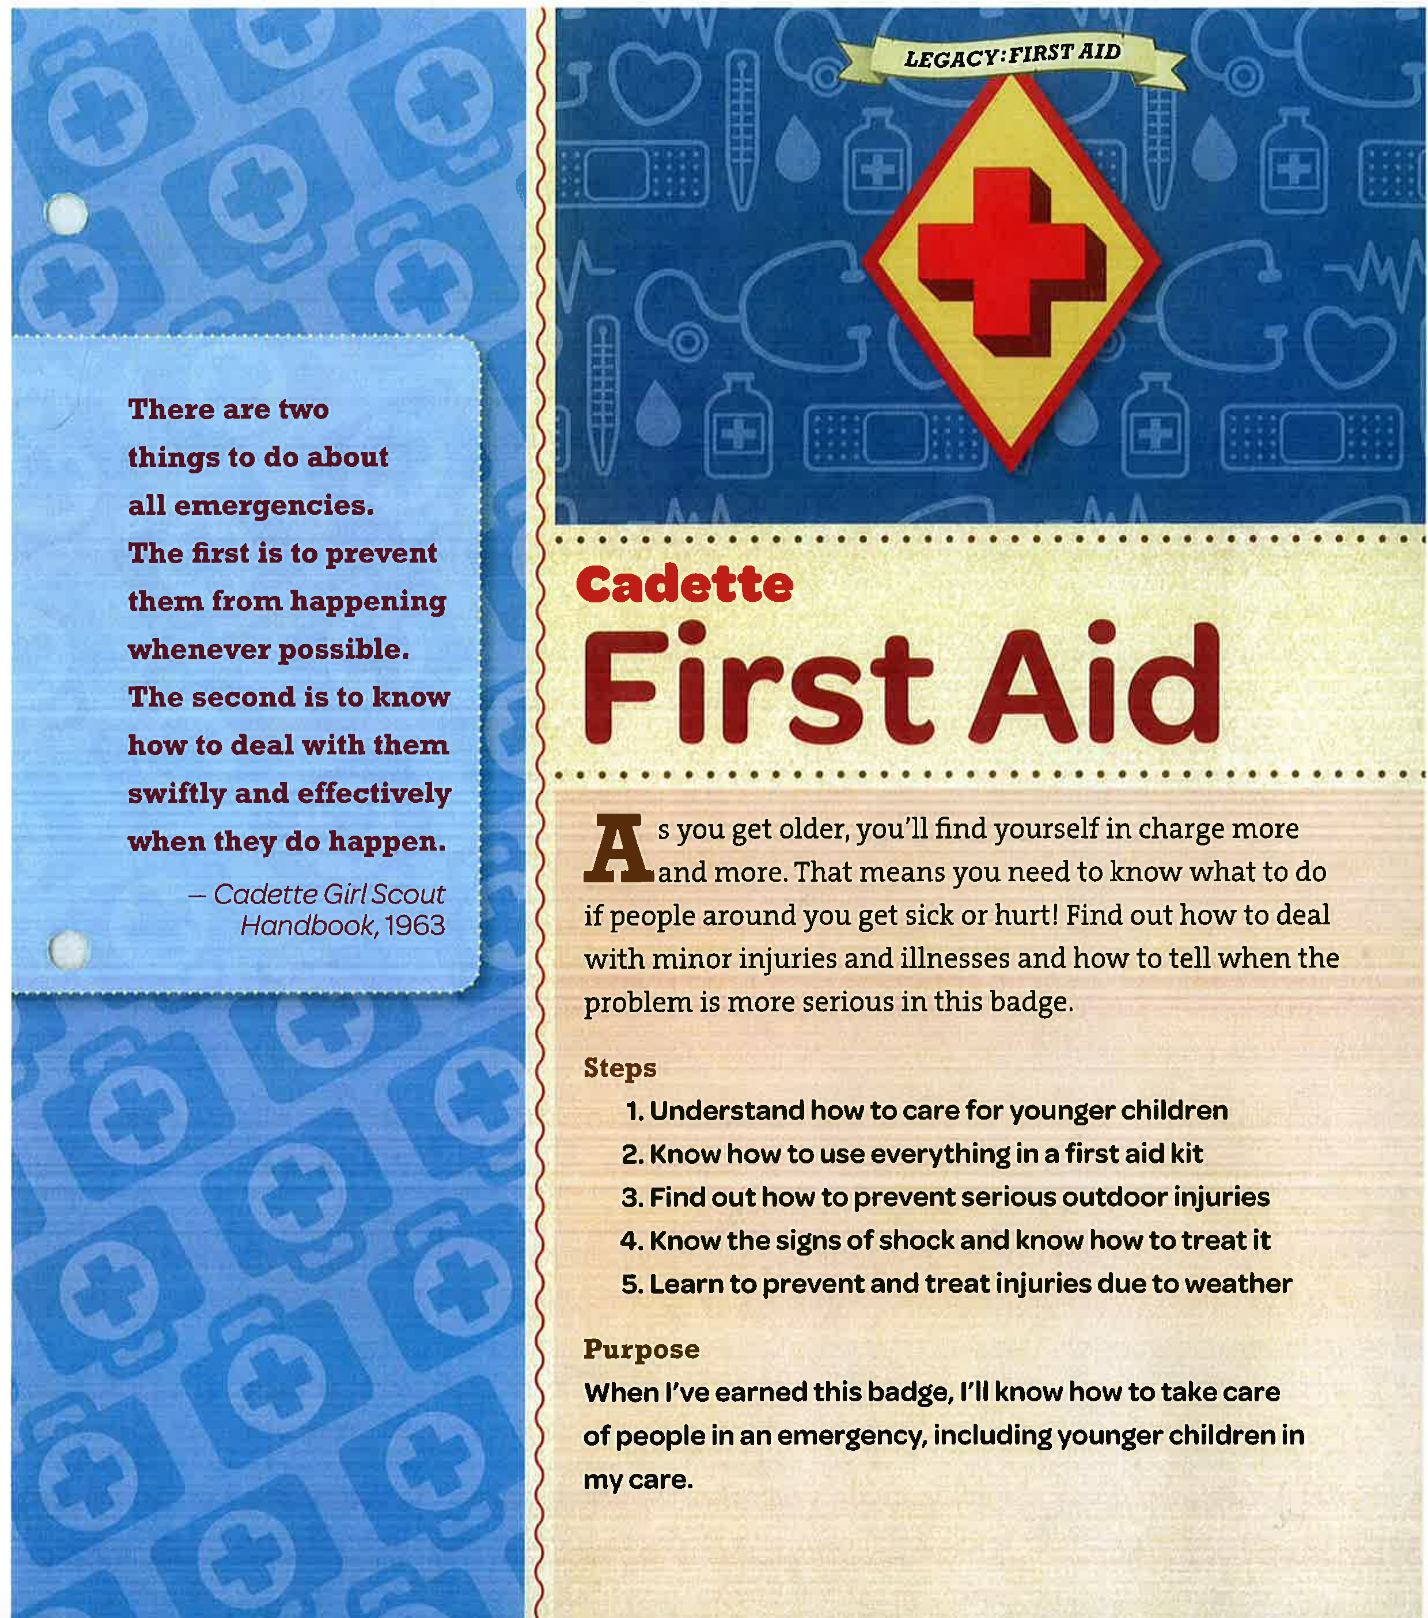 Cadette First Aid